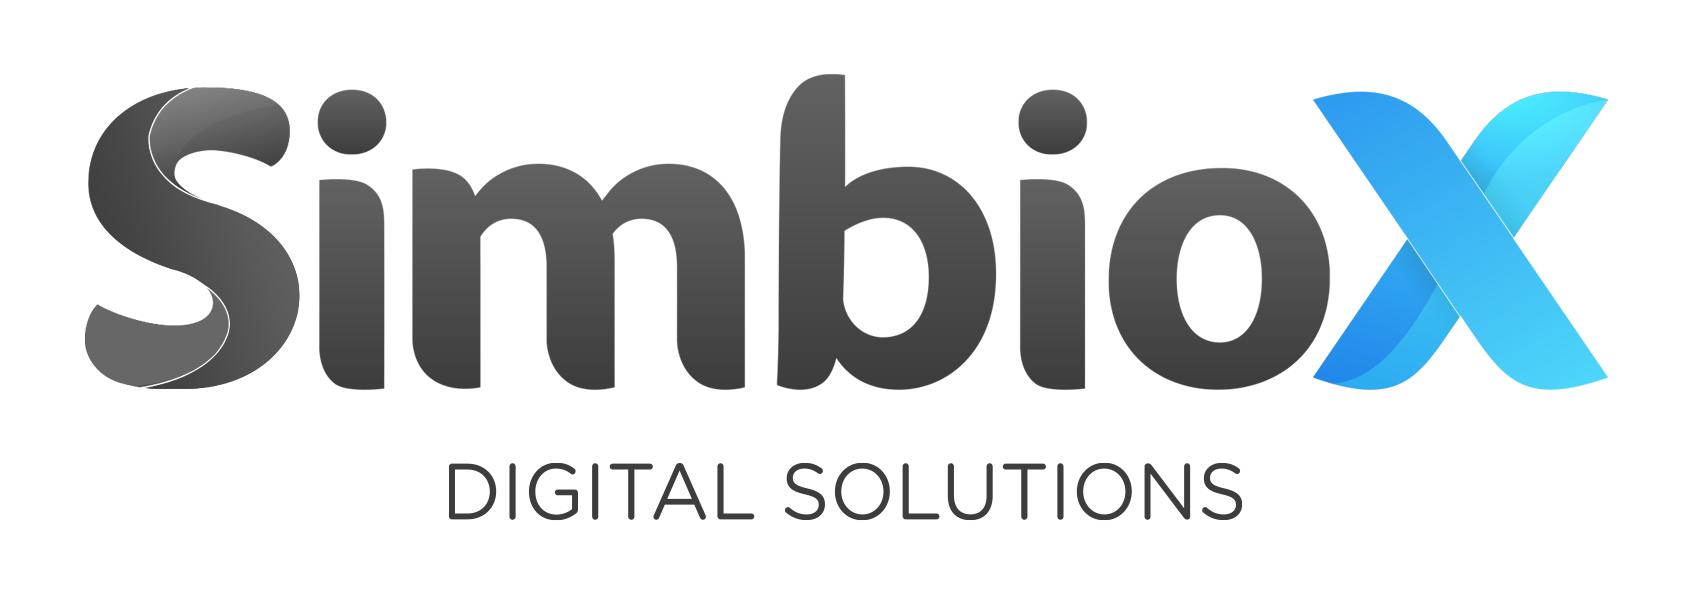 SimbioX - WebSite